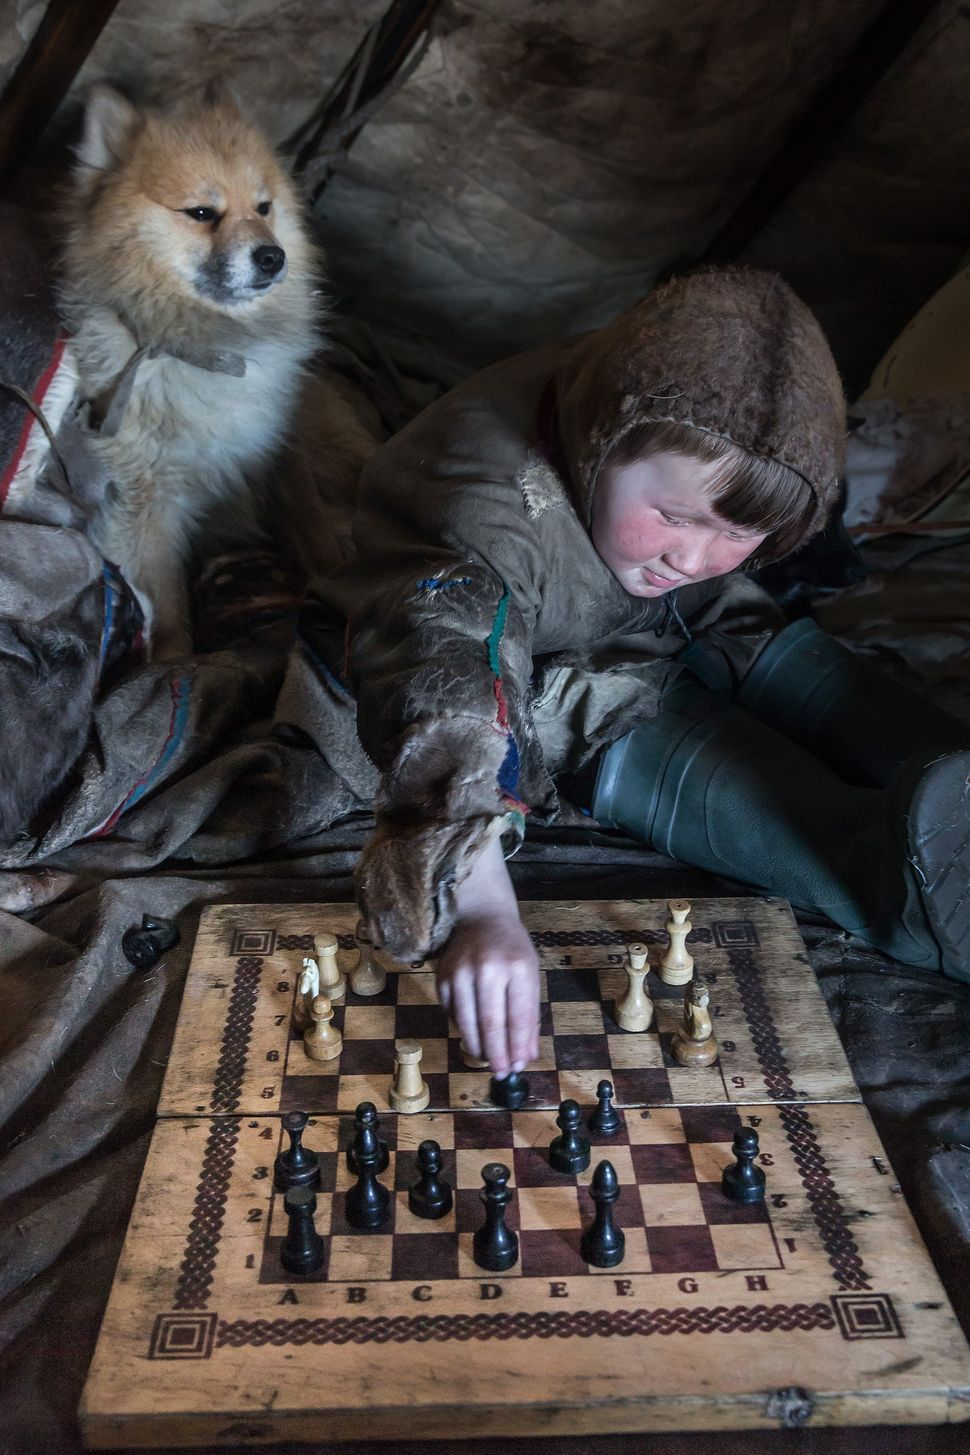 A Nenet kid plays chess as his animal is seen next to him in his shelter, 150 km from the town of Salekhard, Yamalo-Nenets Au